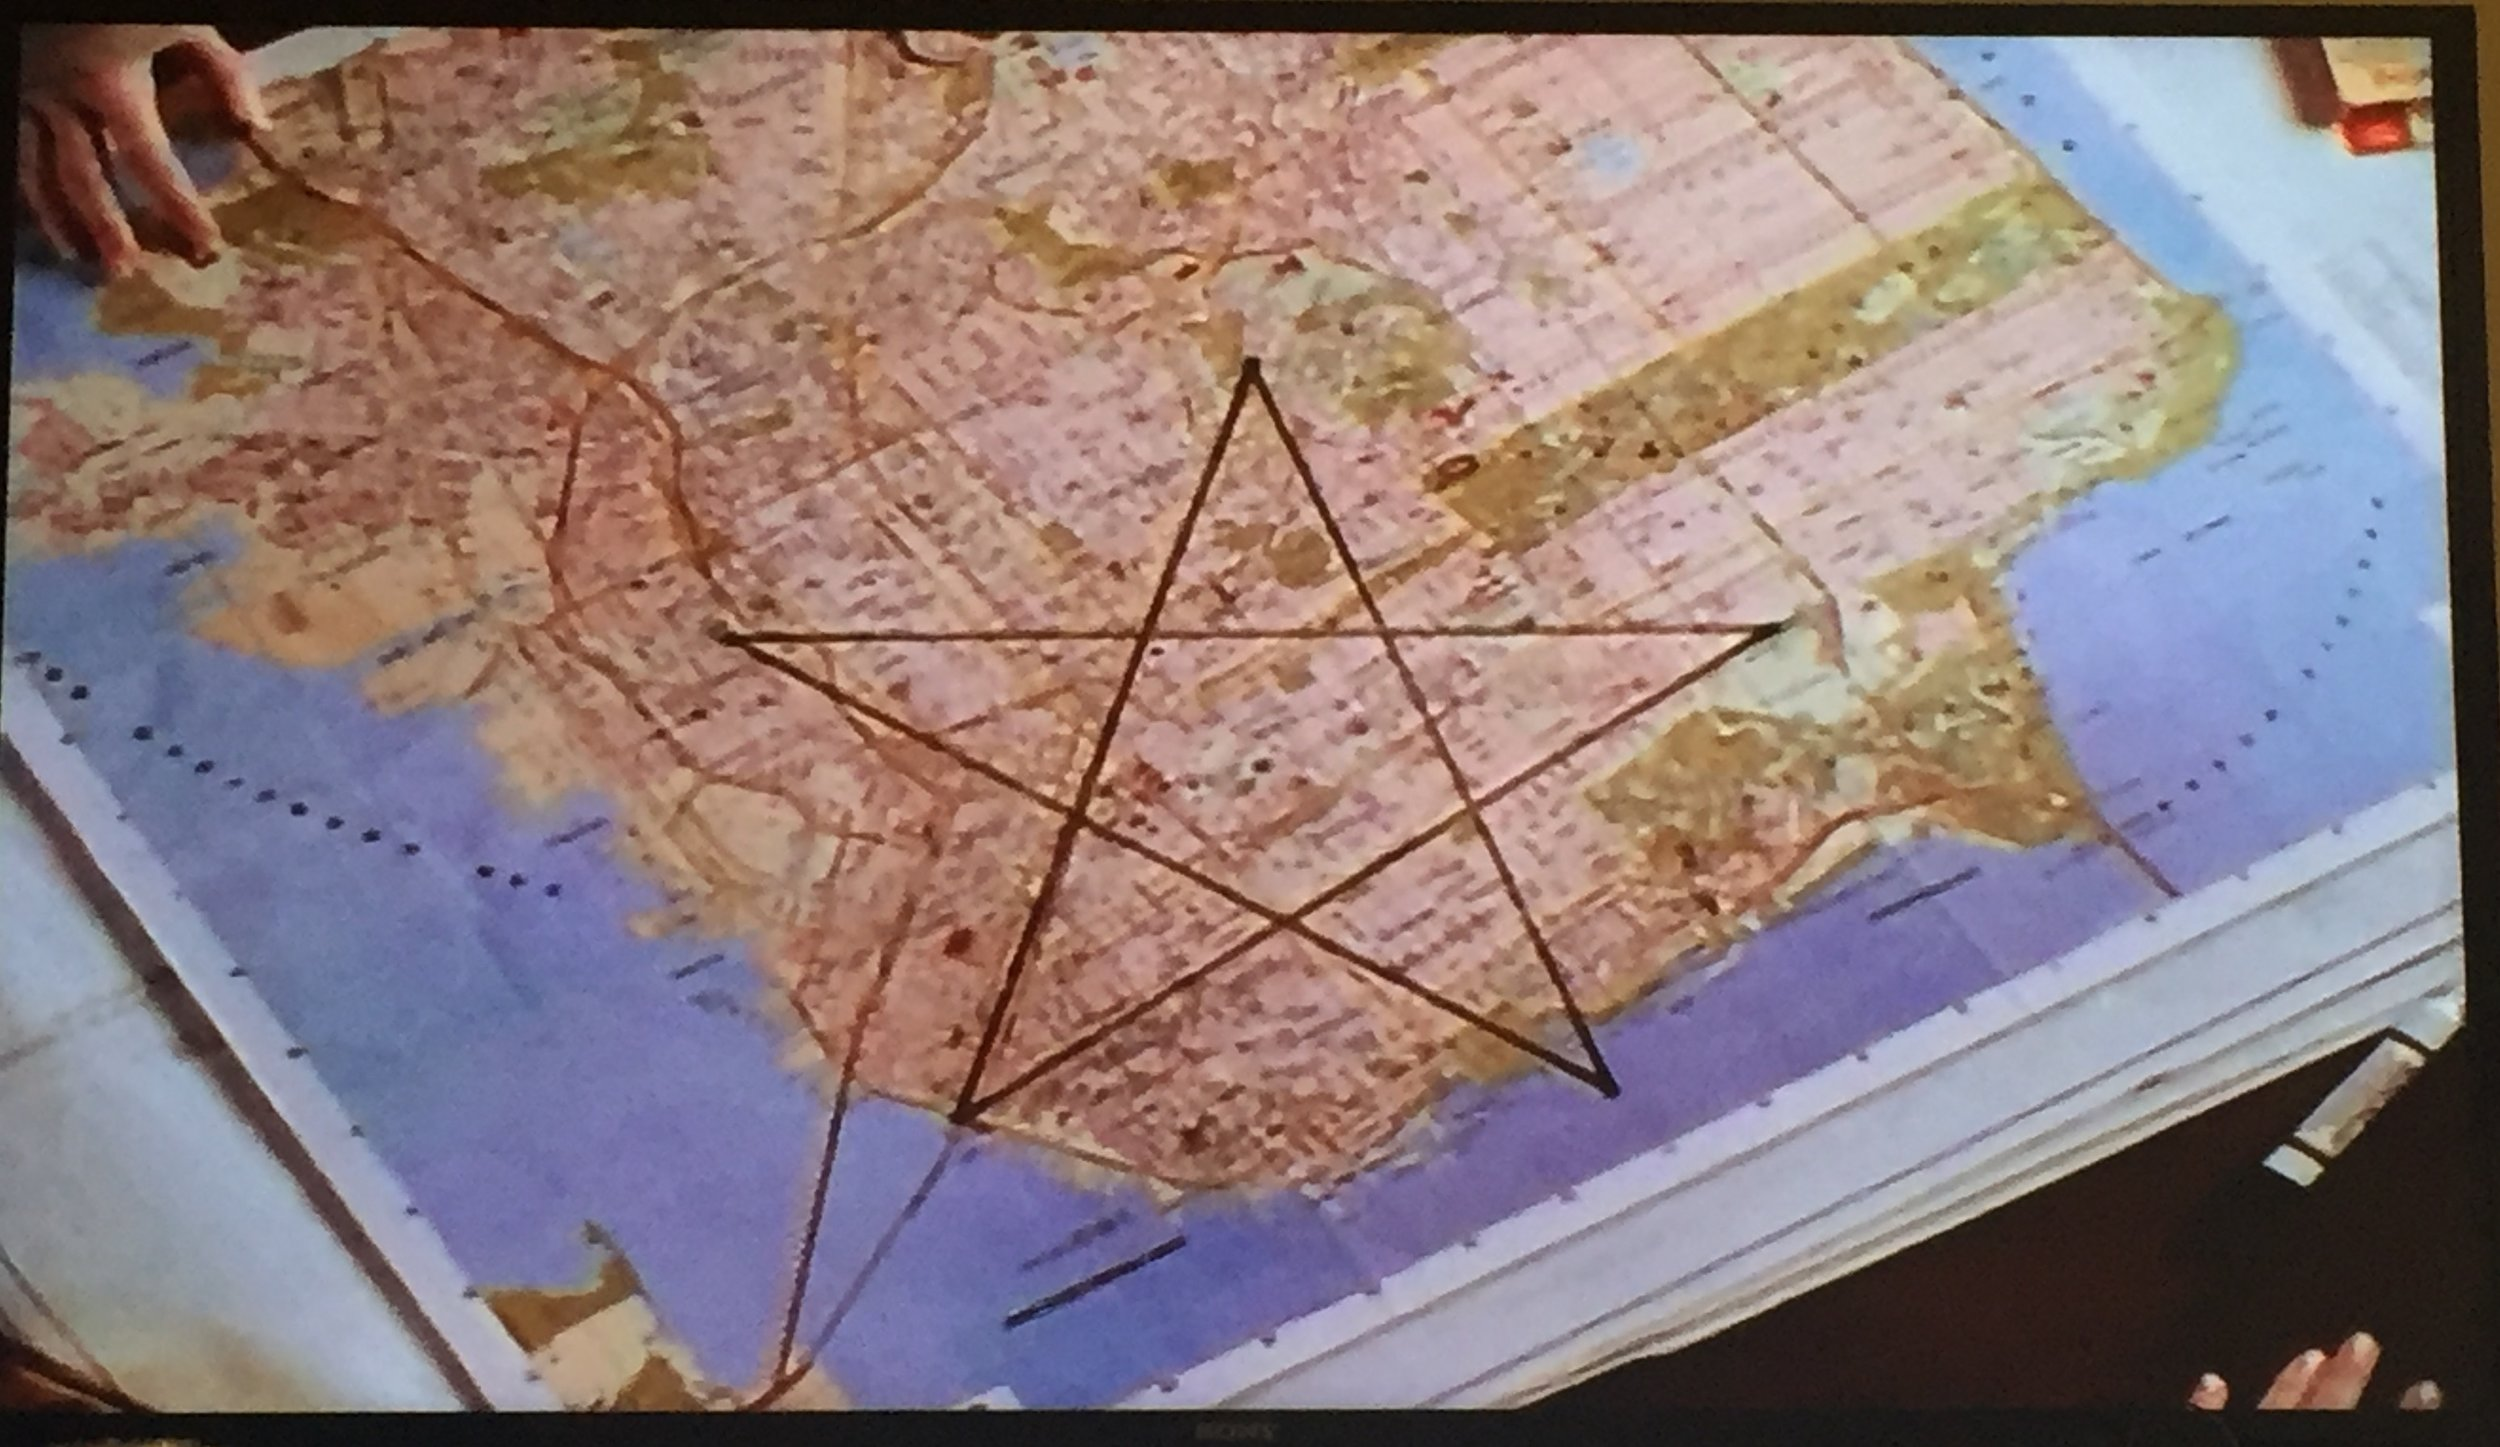 If you don't know what a pentagram looks like, this is a pentagram.